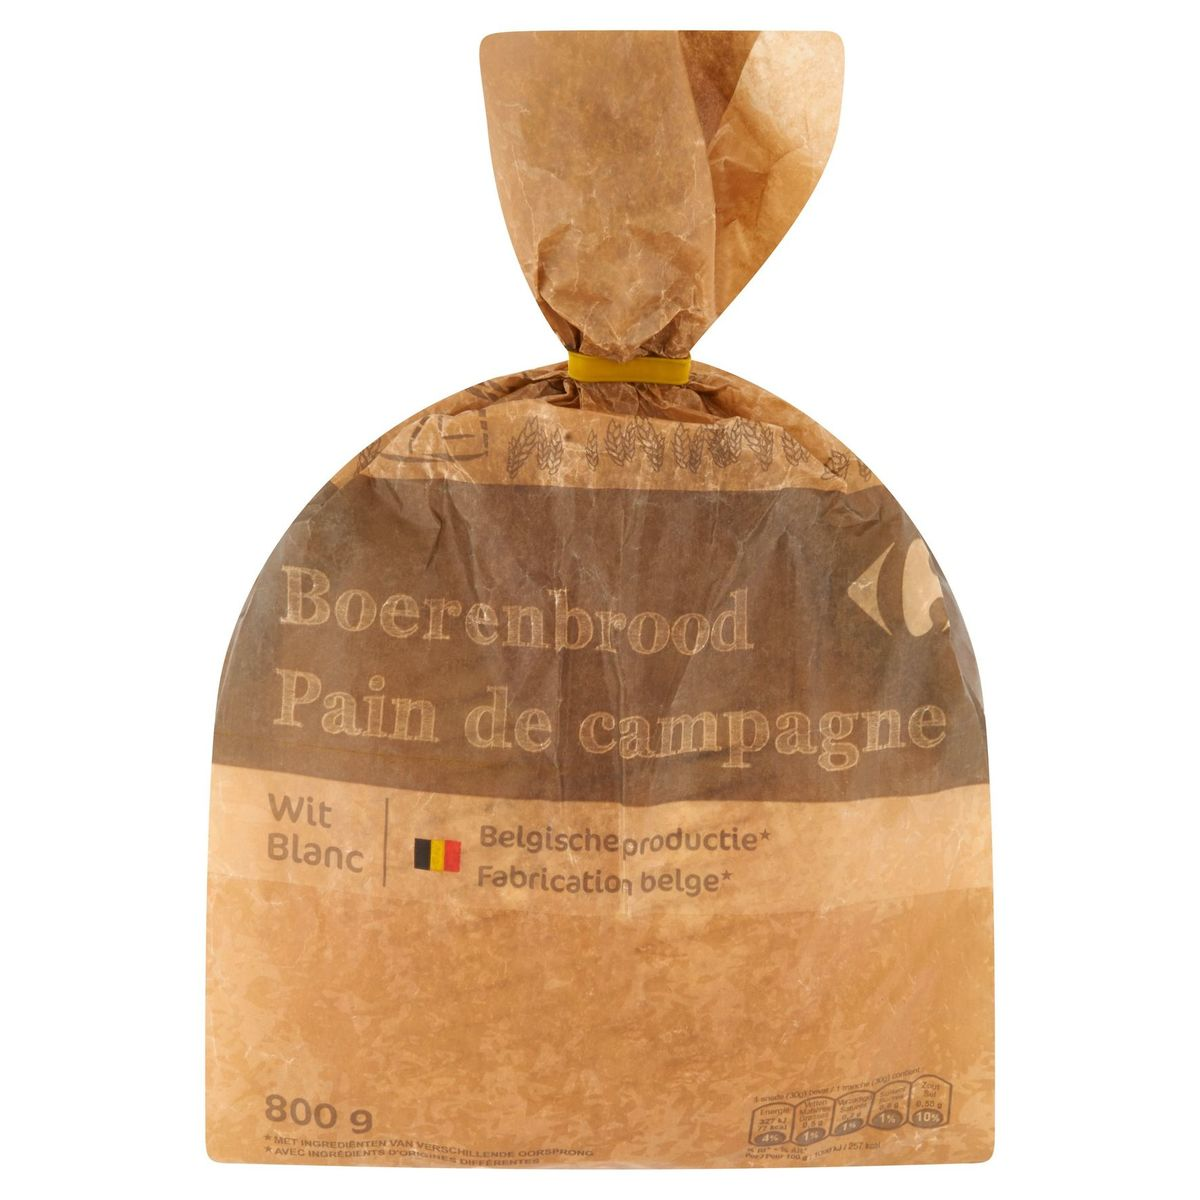 Carrefour Boerenbrood Wit 800 g